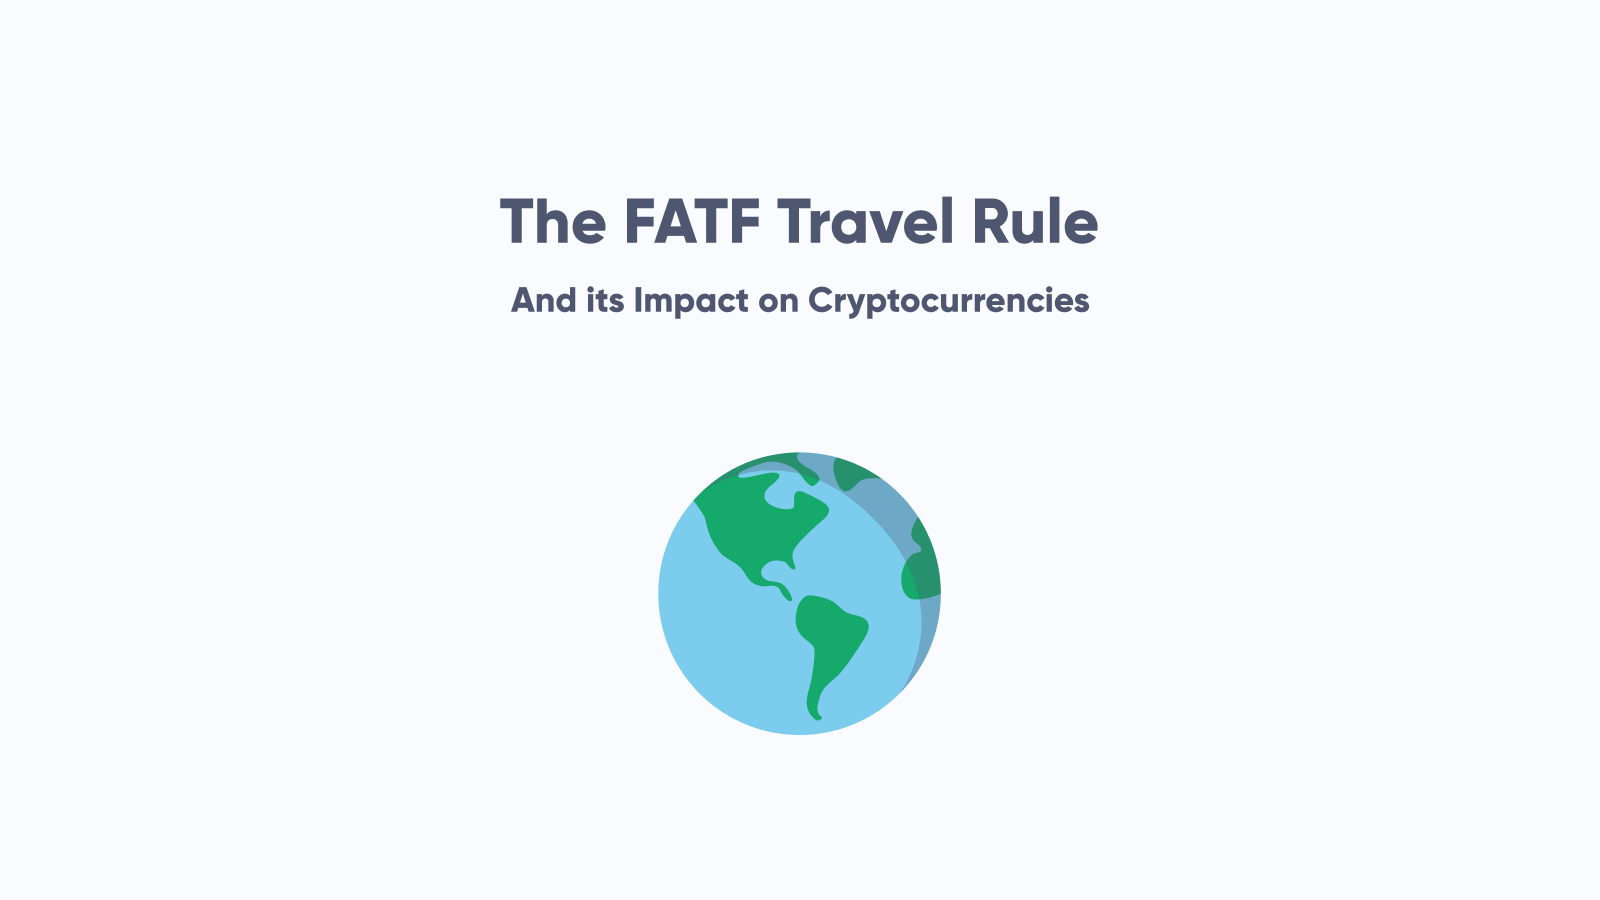 travel rule fatf regulations laws europe cryptocurrency ethereum bitcoin